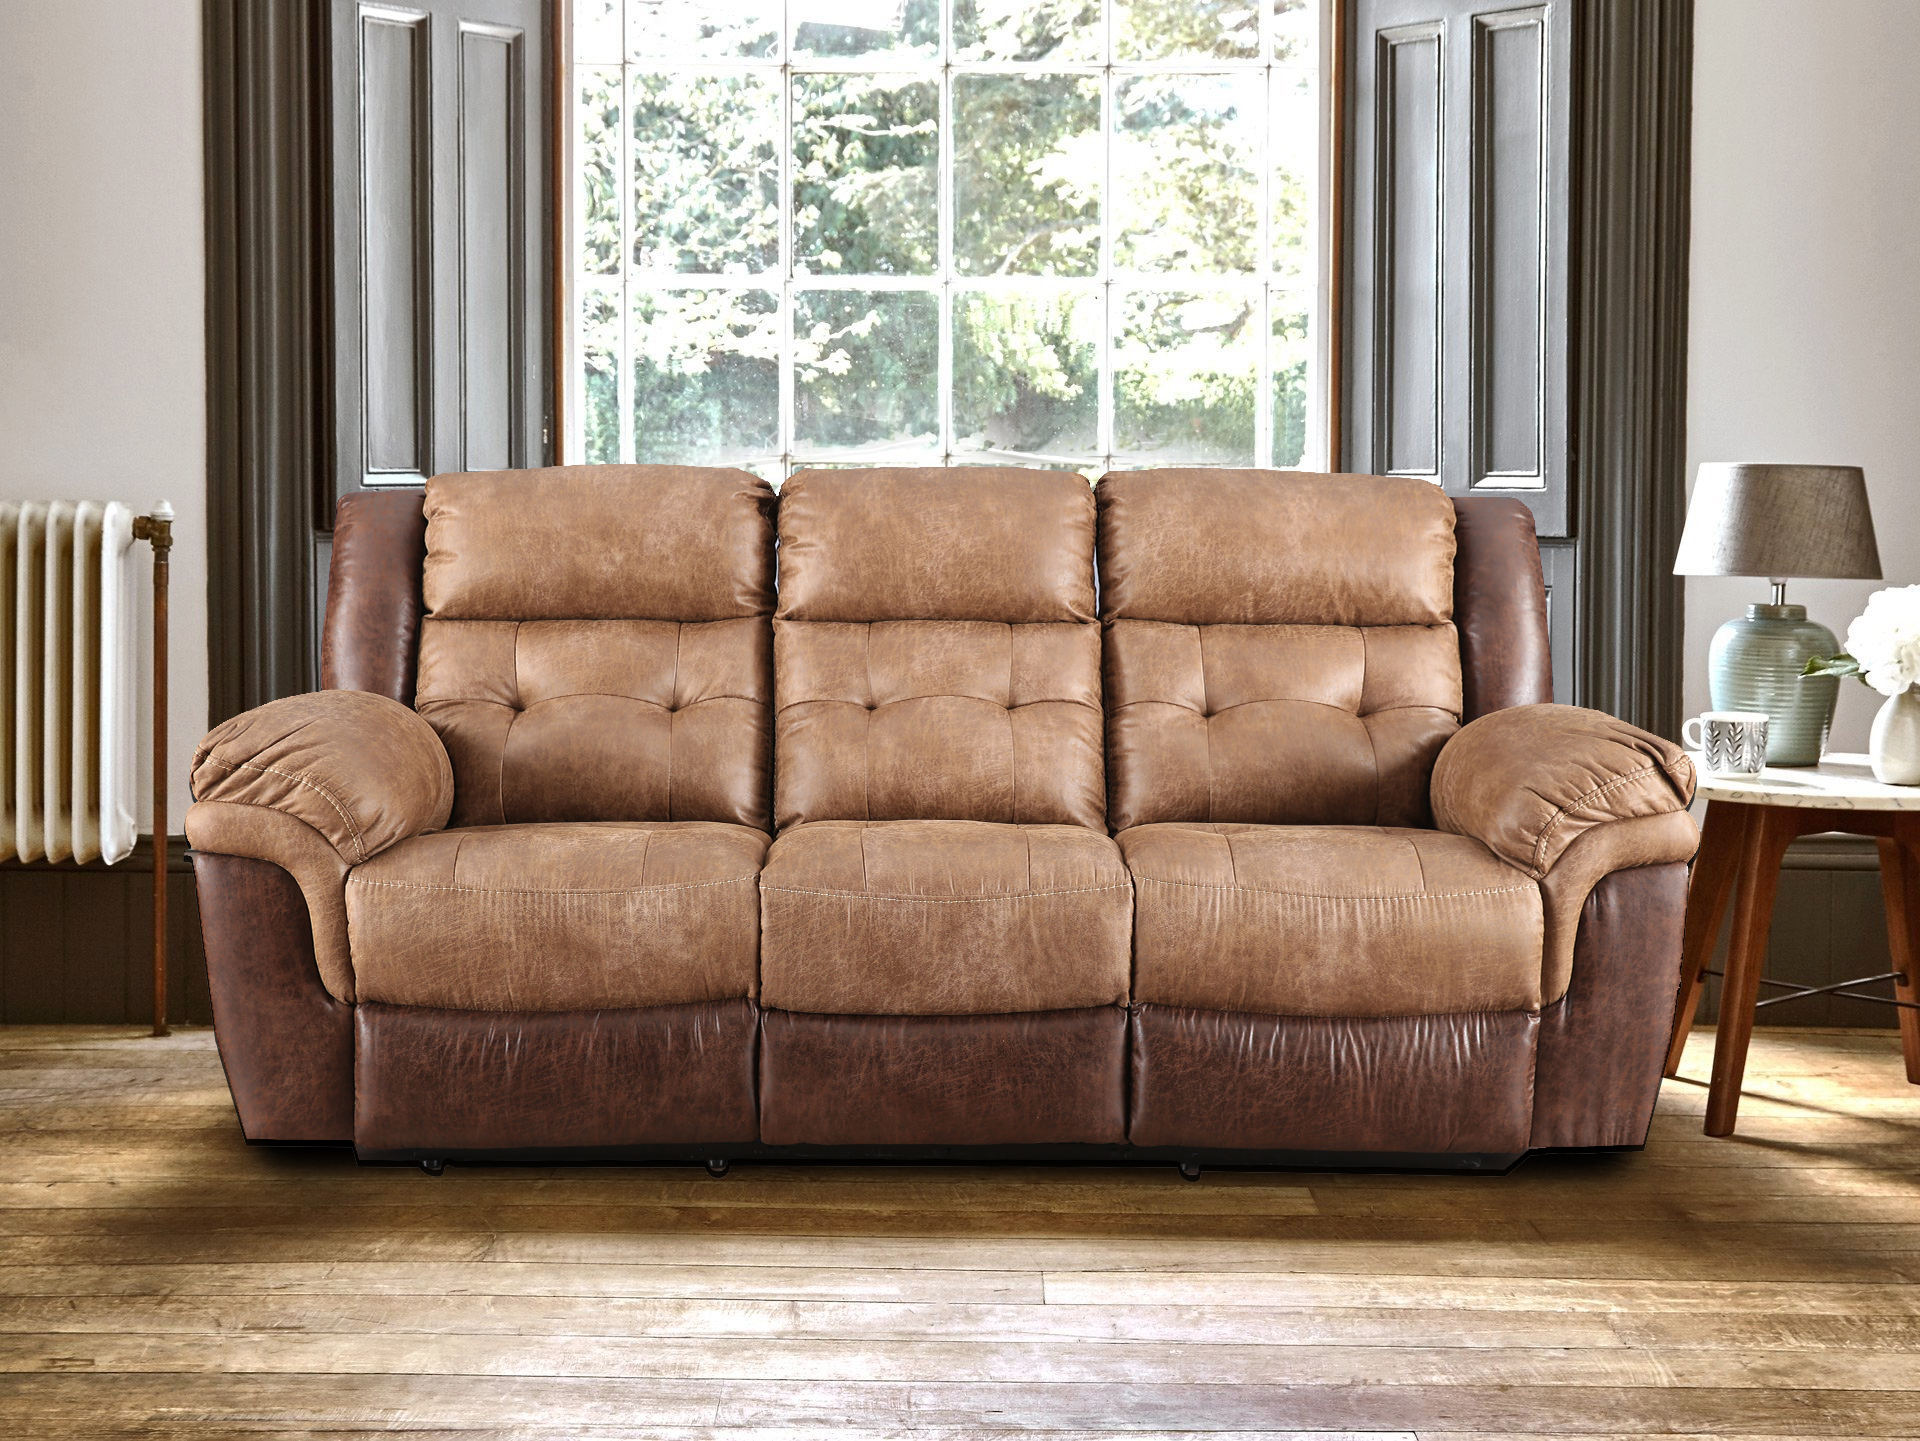 Eclairs Leather Three Seater Recliner in Brown Colour by HomeTown